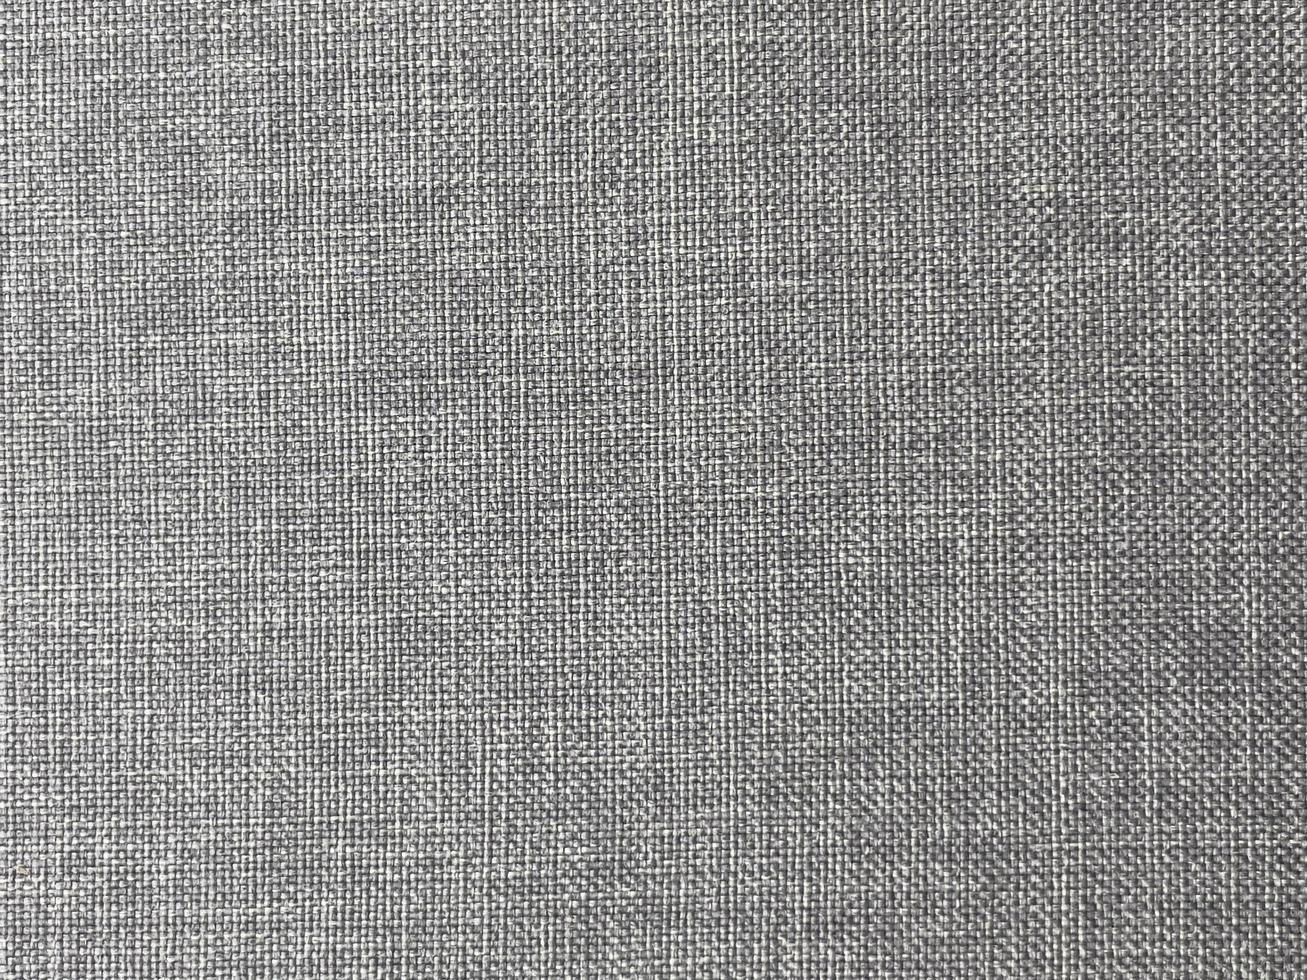 Natural linen gray color texture as background photo